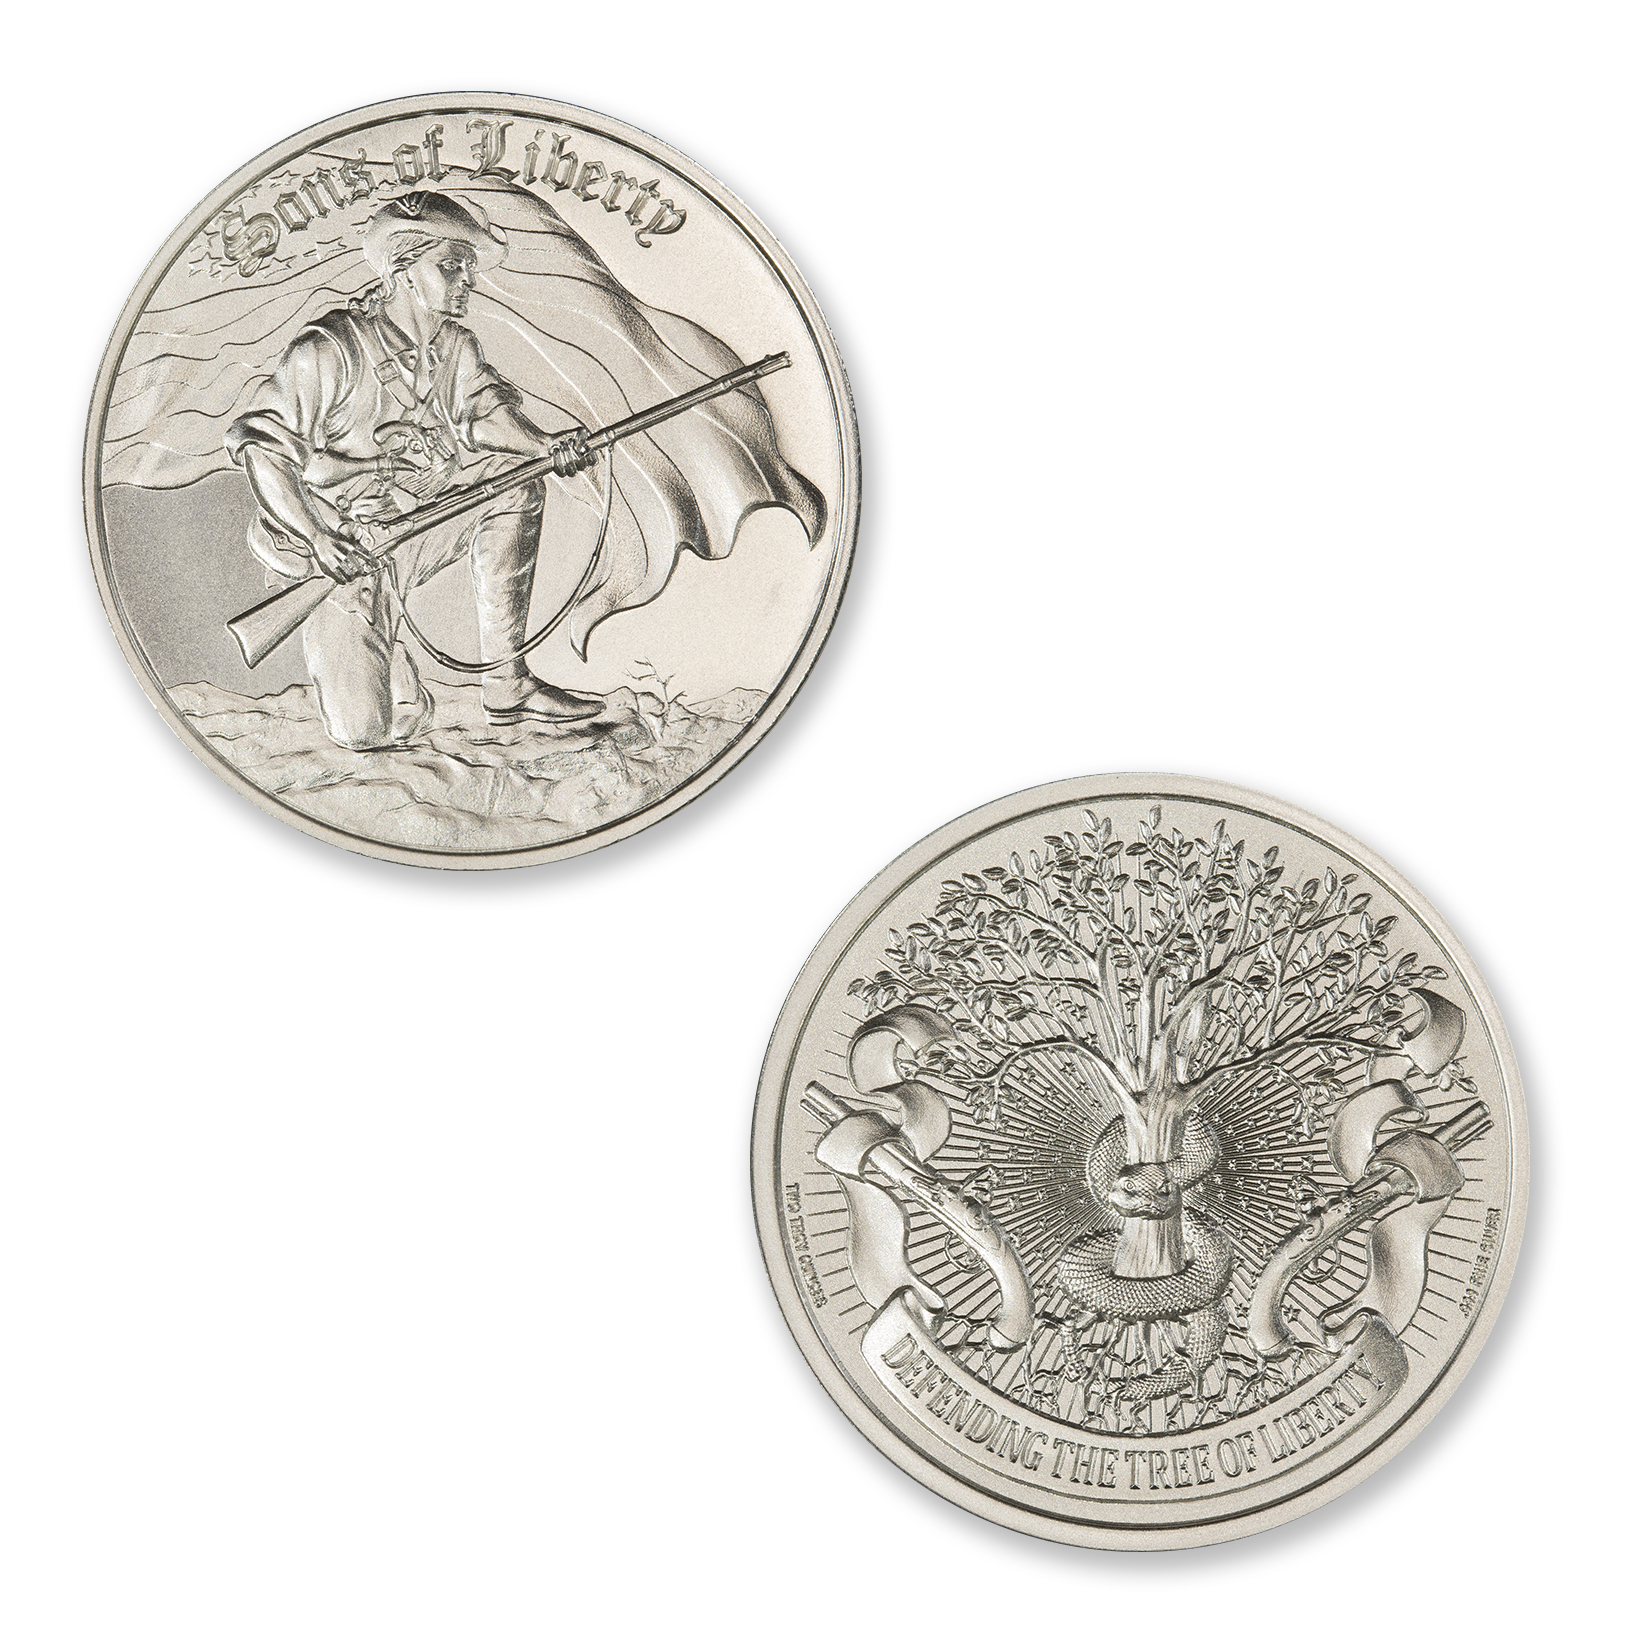 SONS OF LIBERTY, LIBERTY TREE – 2 TROY OUNCE – 39MM